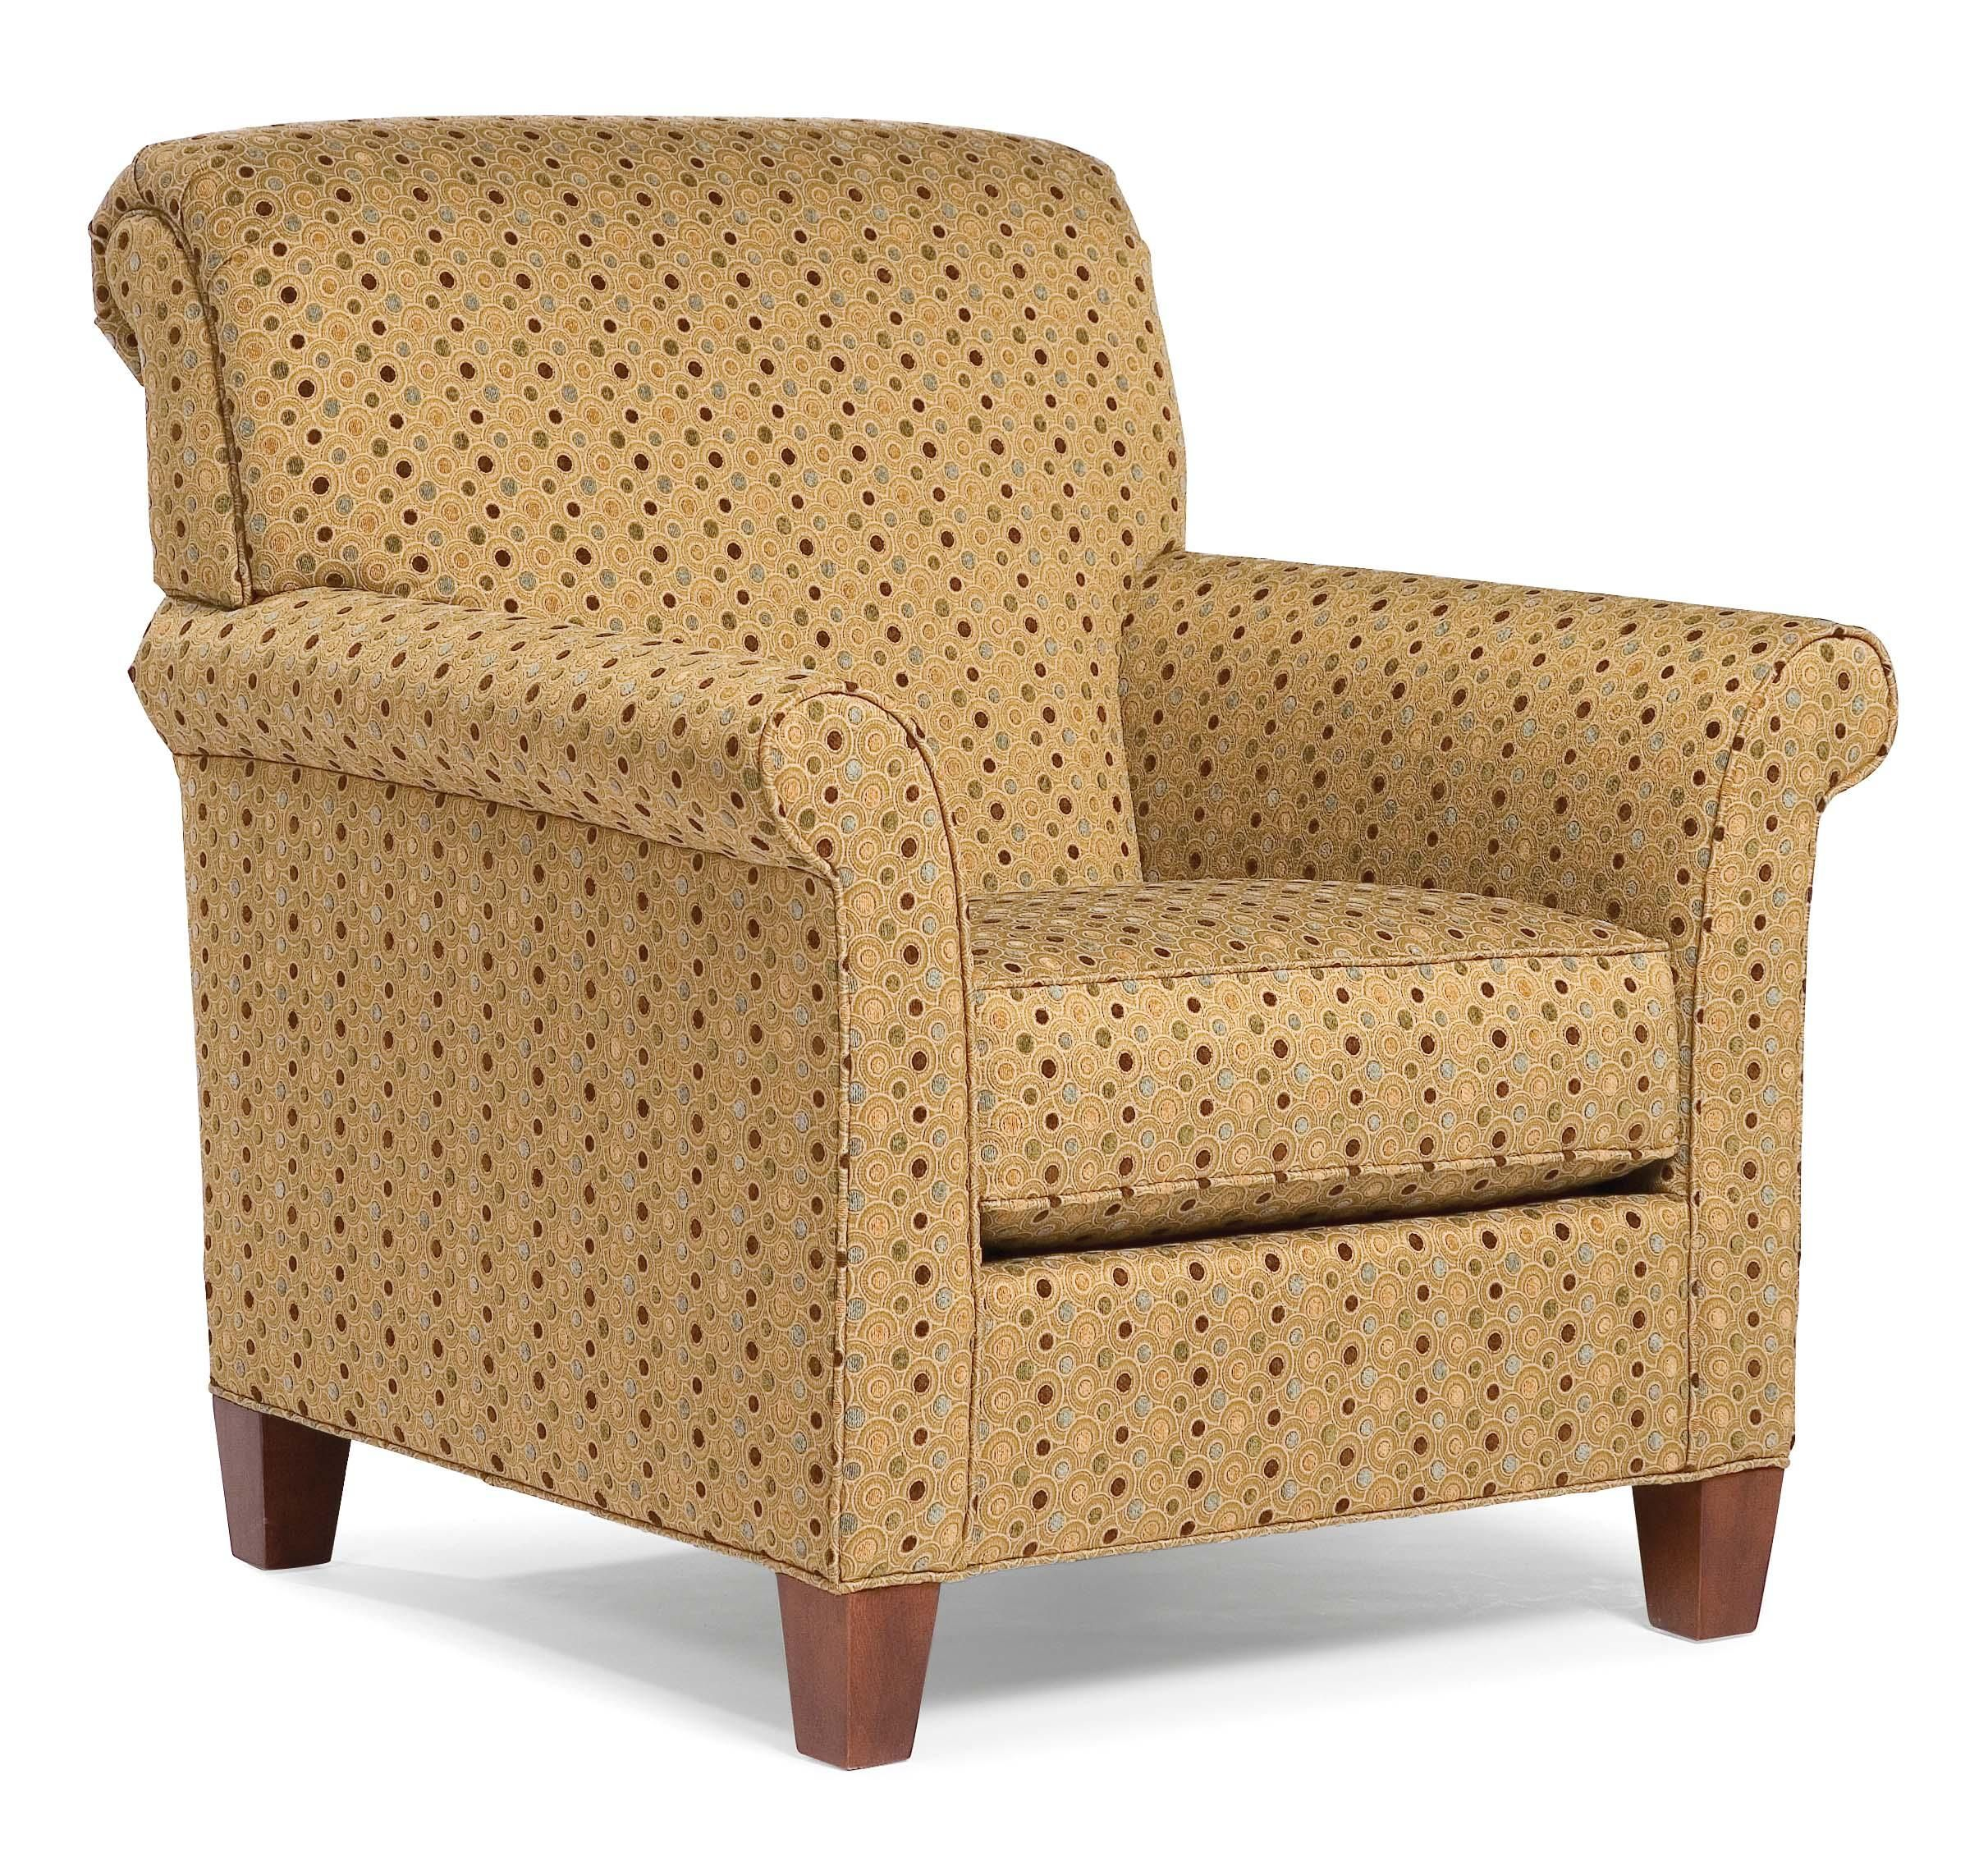 Fairfield Chairs Upholstered Accent Chair   At Home Furniture   Upholstered  Chair Salt Lake City. Fairfield Chairs Upholstered Accent Chair   At Home Furniture